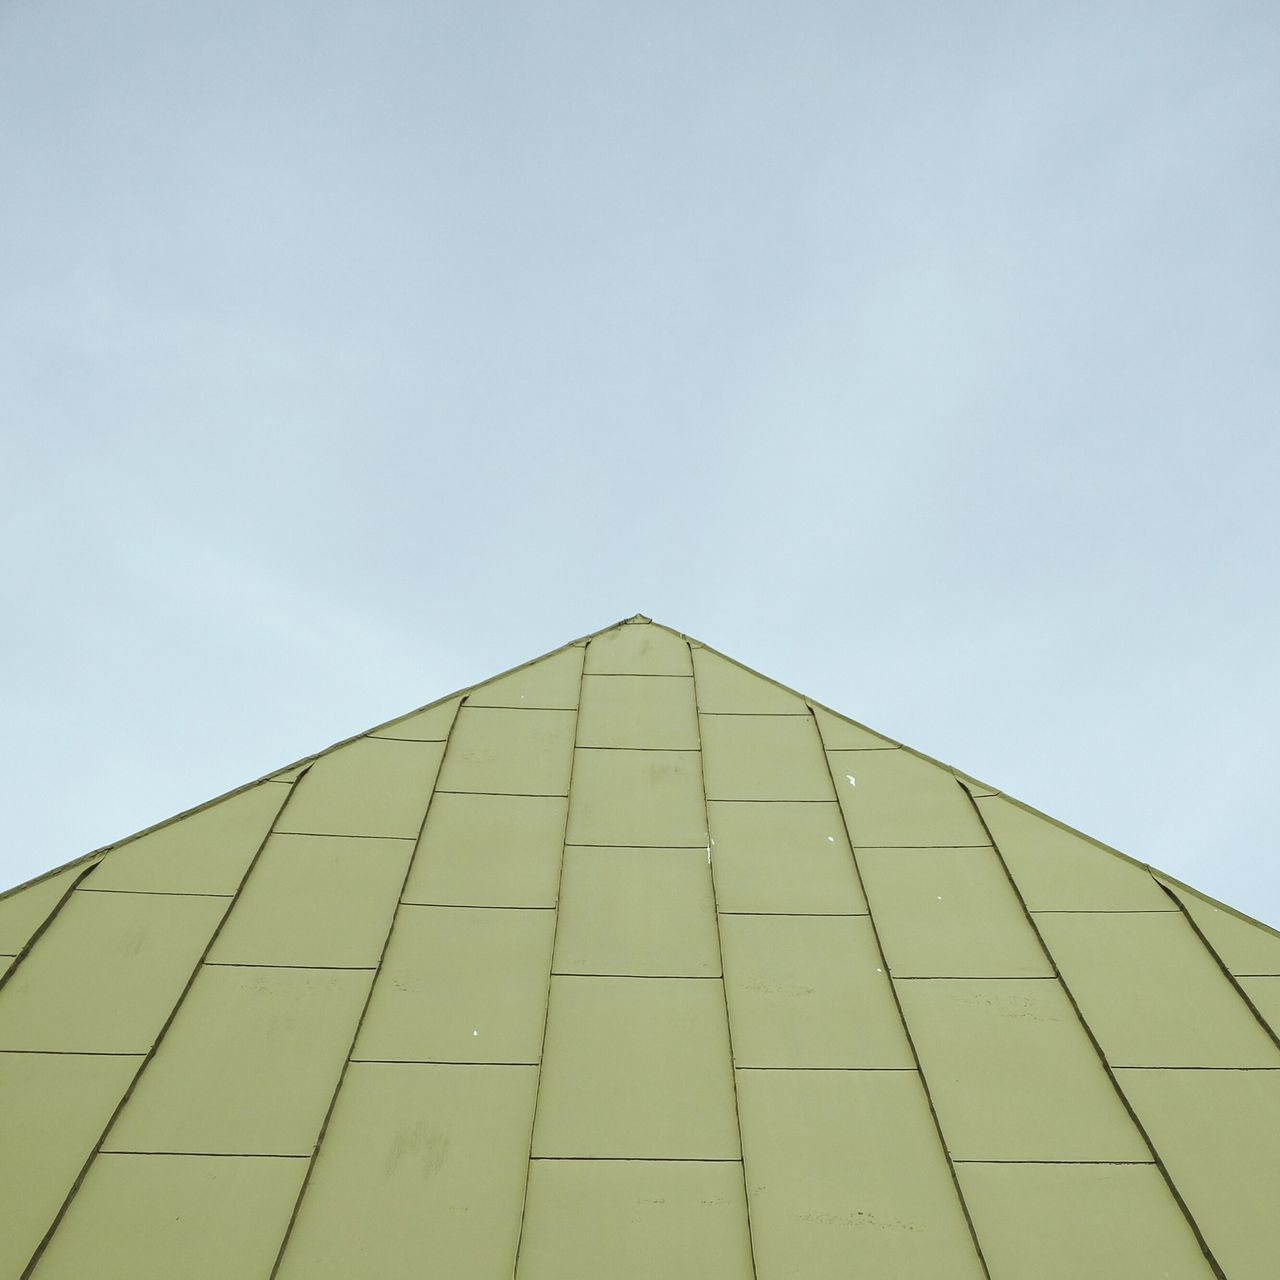 low angle view, built structure, architecture, triangle shape, day, no people, outdoors, sky, pyramid, building exterior, clear sky, modern